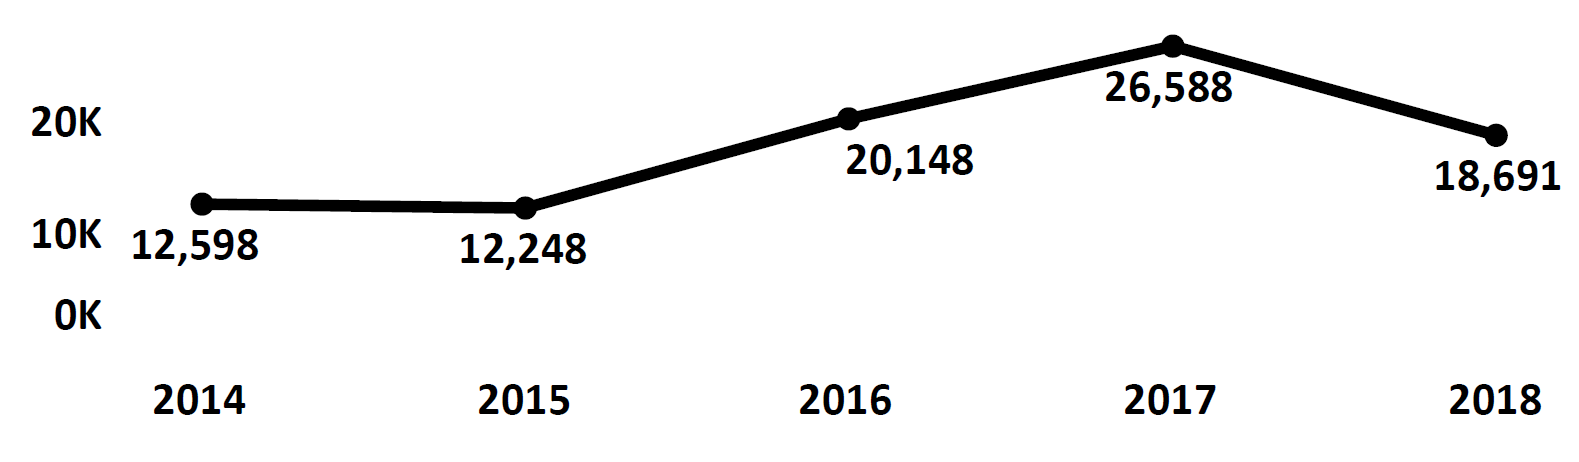 Graph of Do Not Call complaints recorded in Rhode Island from fiscal year 2014 to fiscal year 2018. In 2014 there were 12,598 complaints filed, which dipped than peaked at 26,588 in 2017. In 2018 there were 18,691 complaints filed.